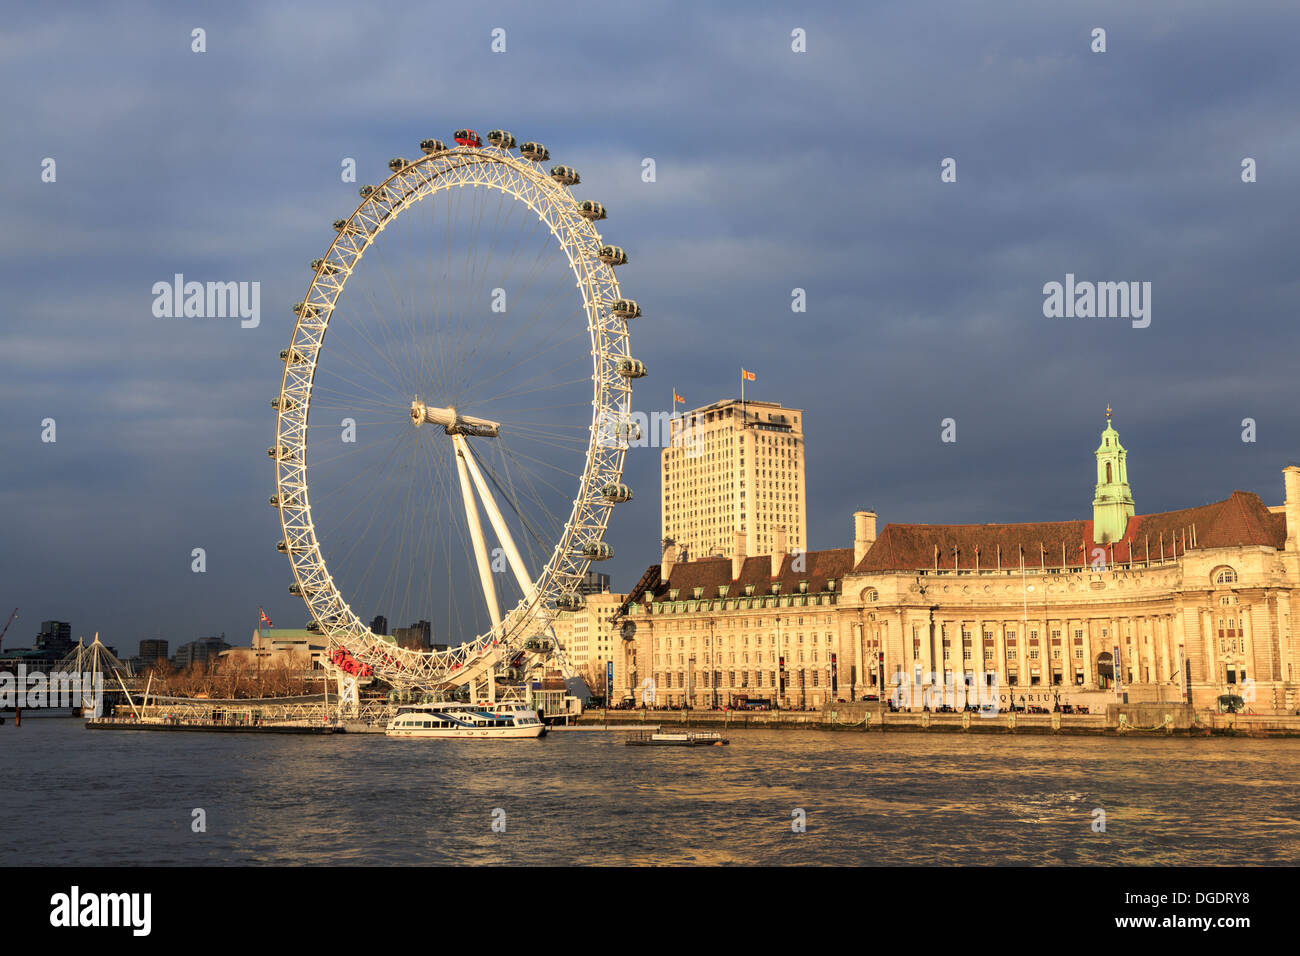 London Eye and County Hall in warm evening light - Stock Image